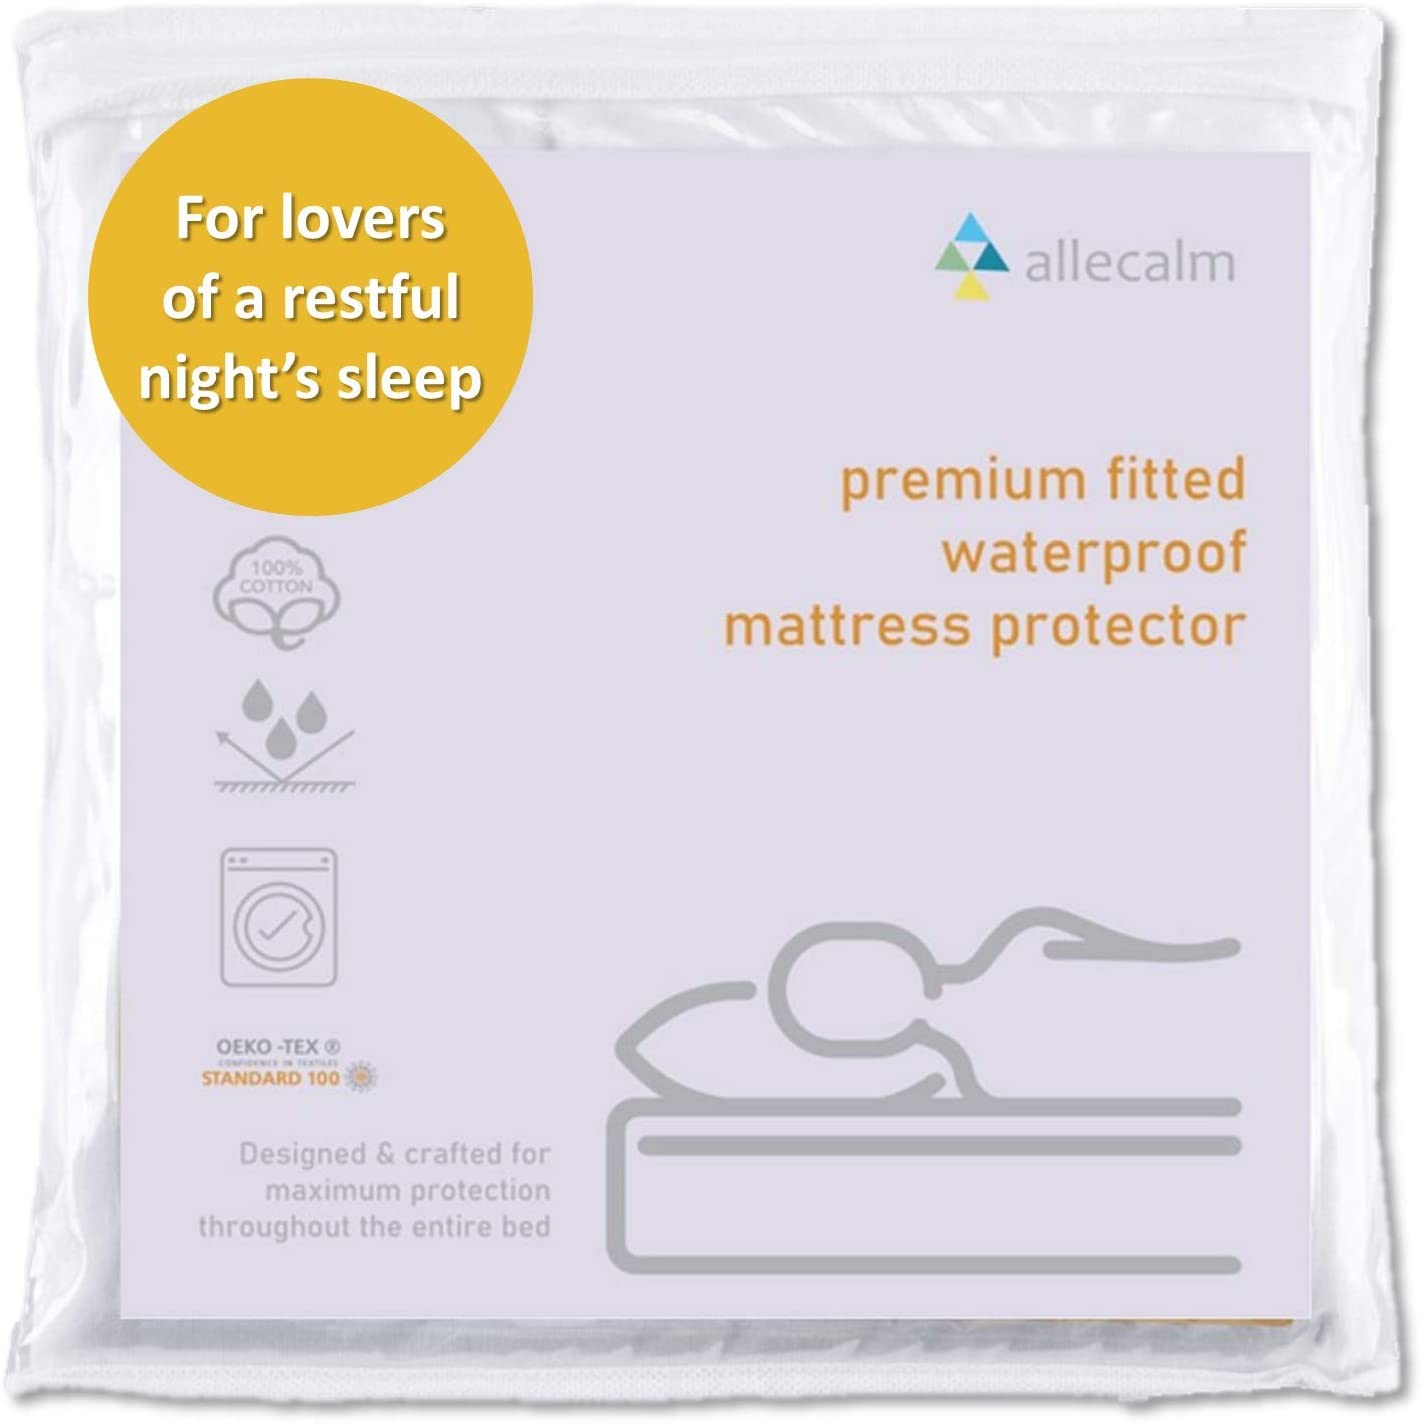 allecalm Twin Size Waterproof Cotton Fitted Mattress Protector, Breathable, Noiseless, Fitted 14